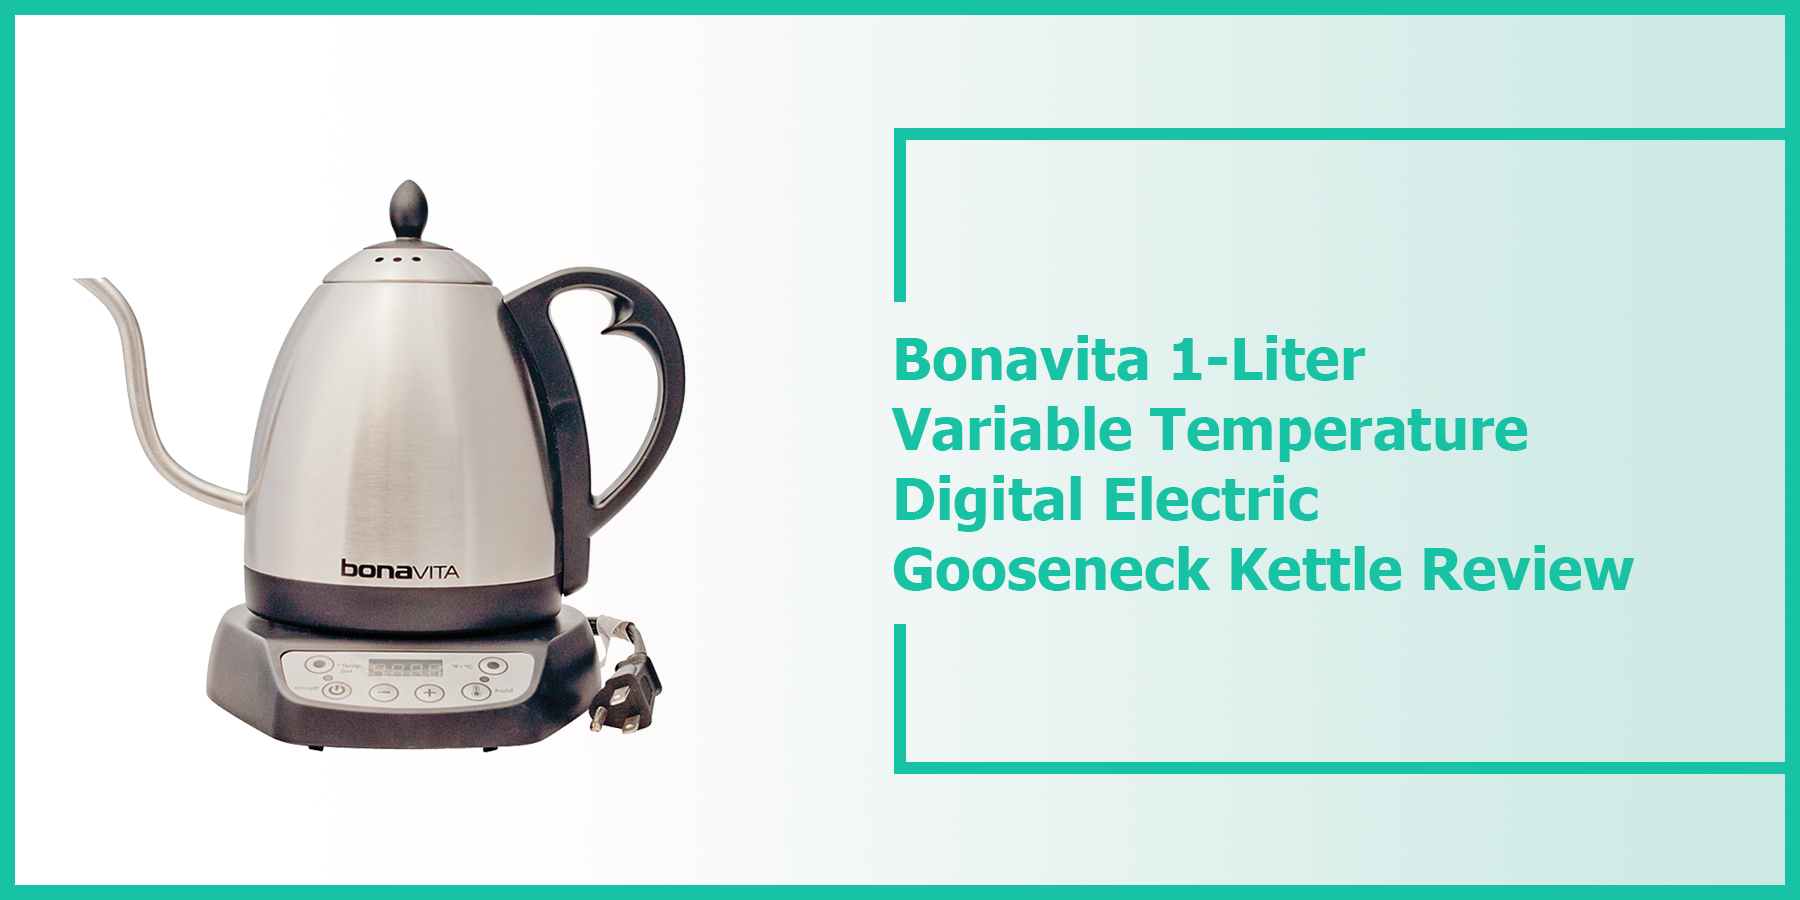 Bonavita 1-Liter Variable Temperature Digital Electric Gooseneck Kettle Review